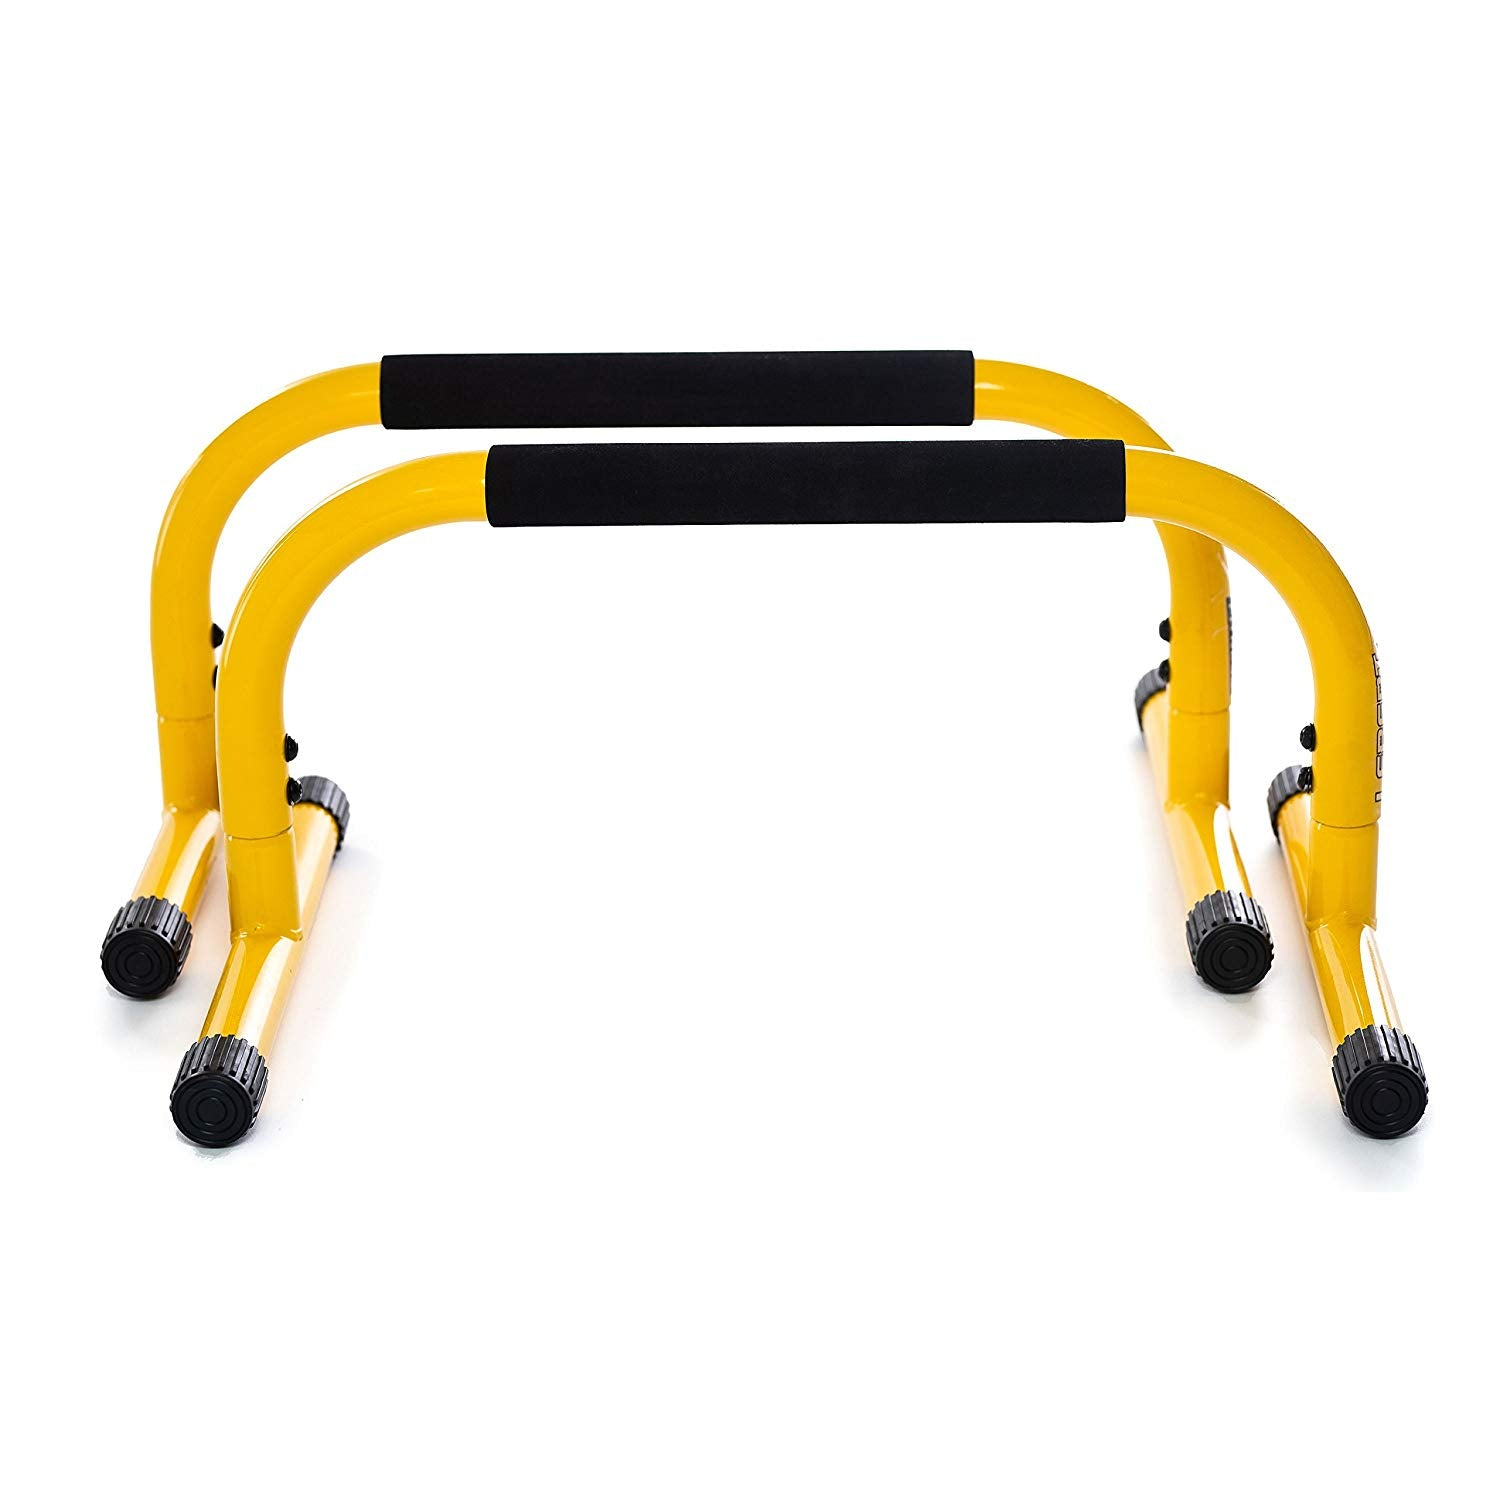 Lebert Parallettes Bars - Yellow